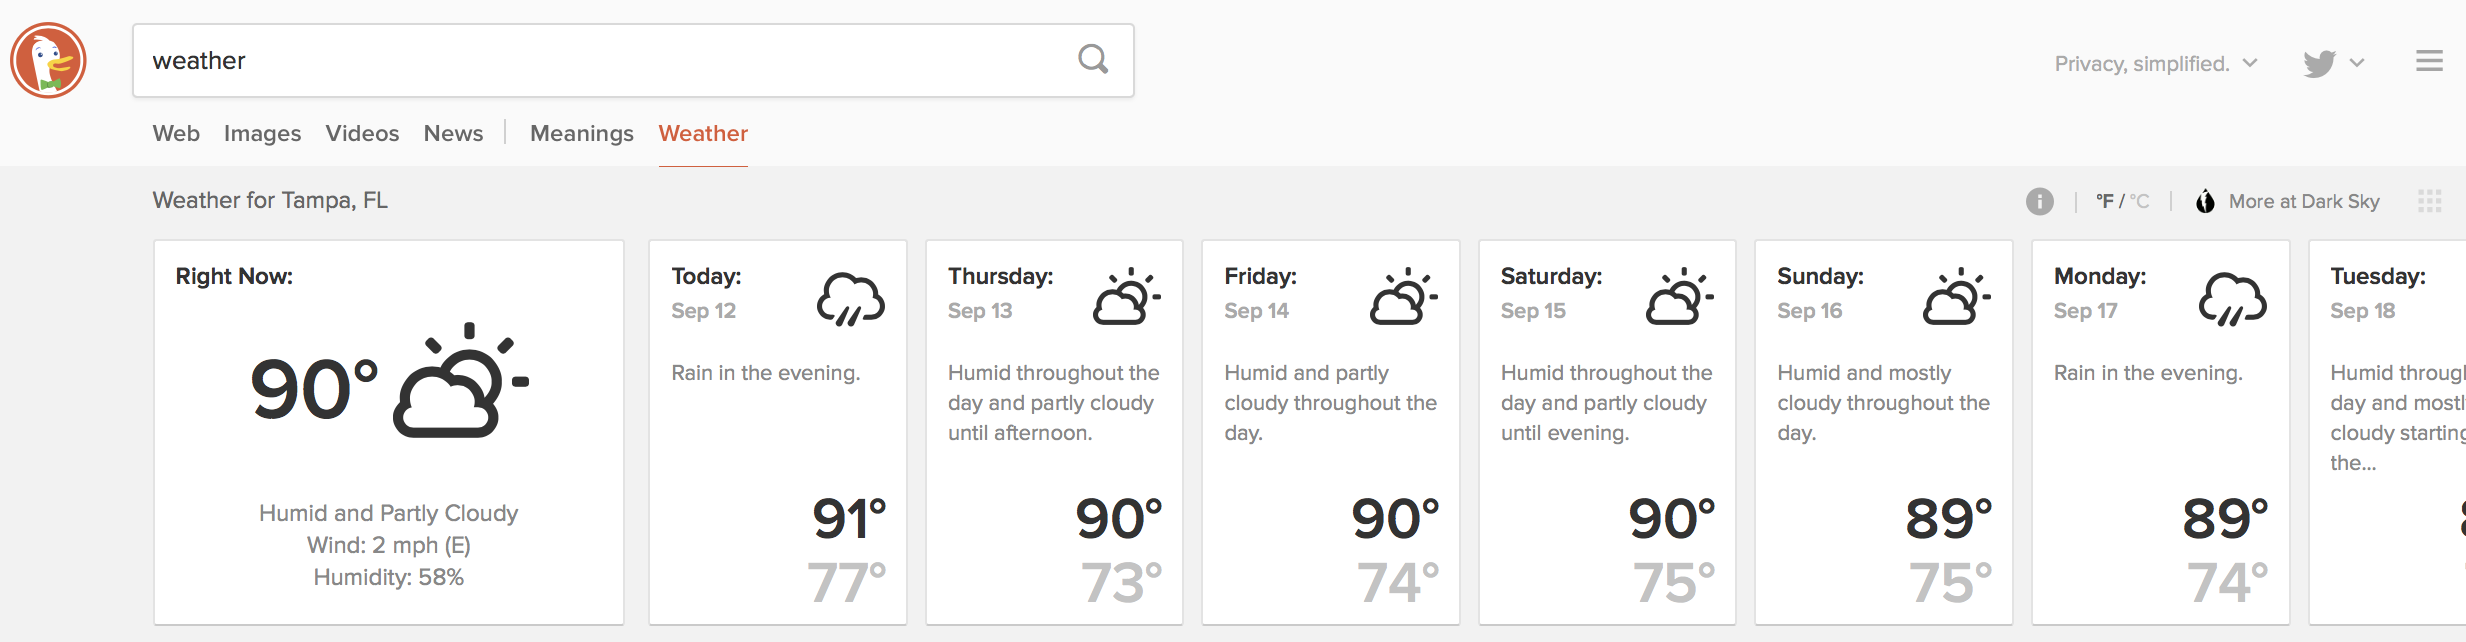 Screenshot of localized weather results from DuckDuckGo.